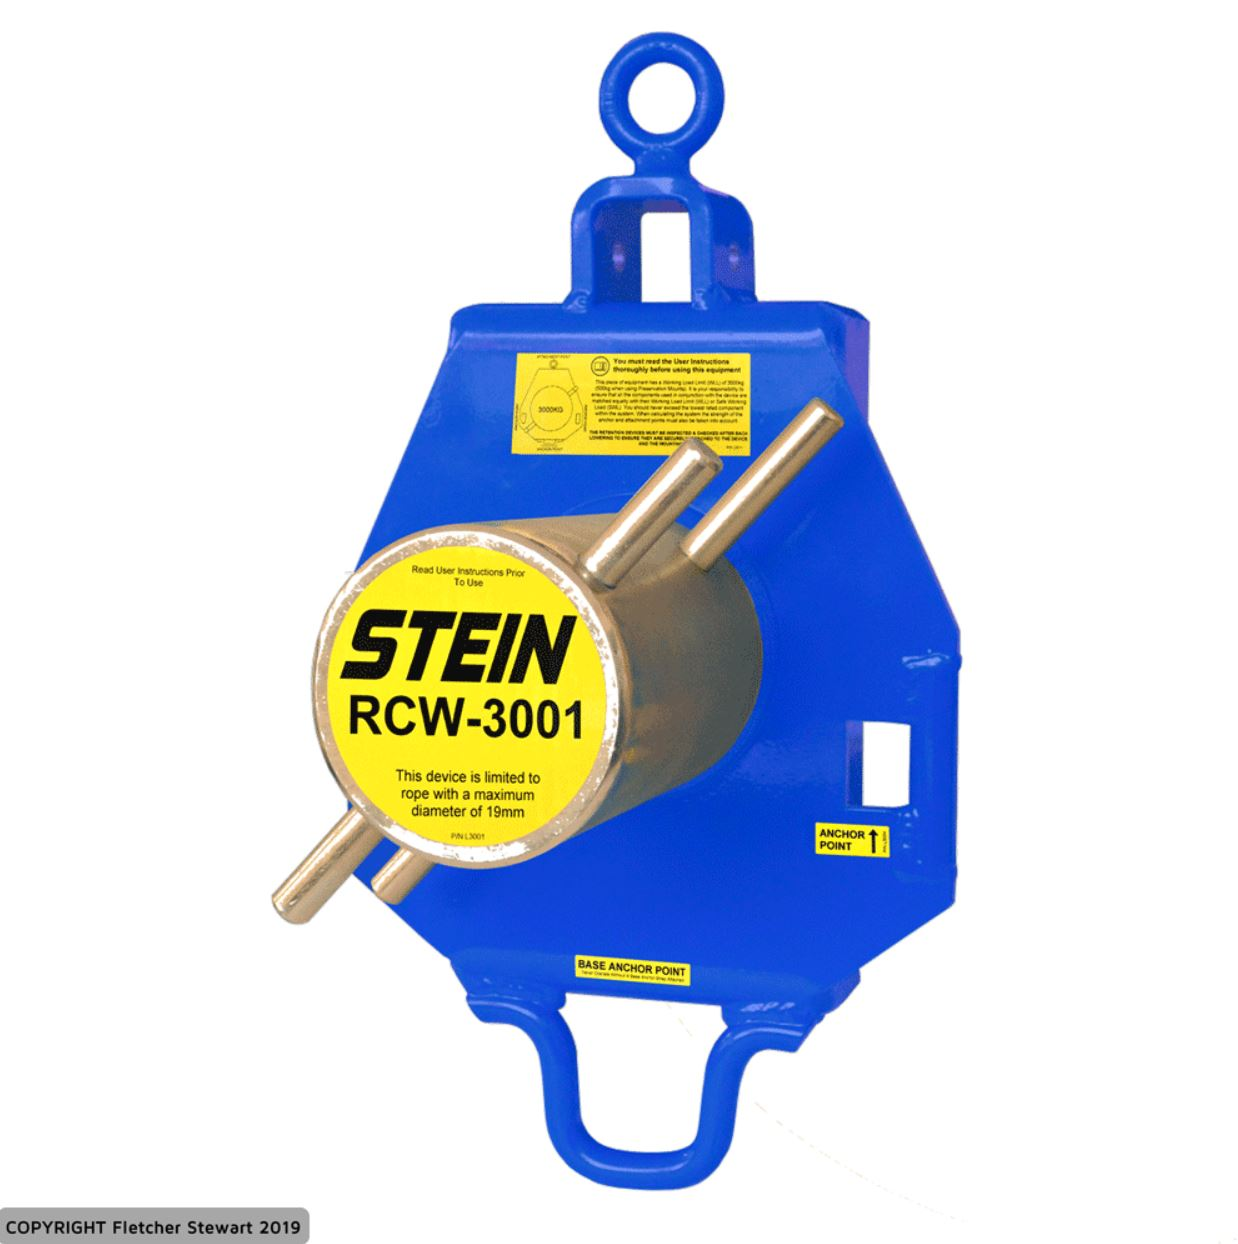 Stein RCW3001 Lowering Device